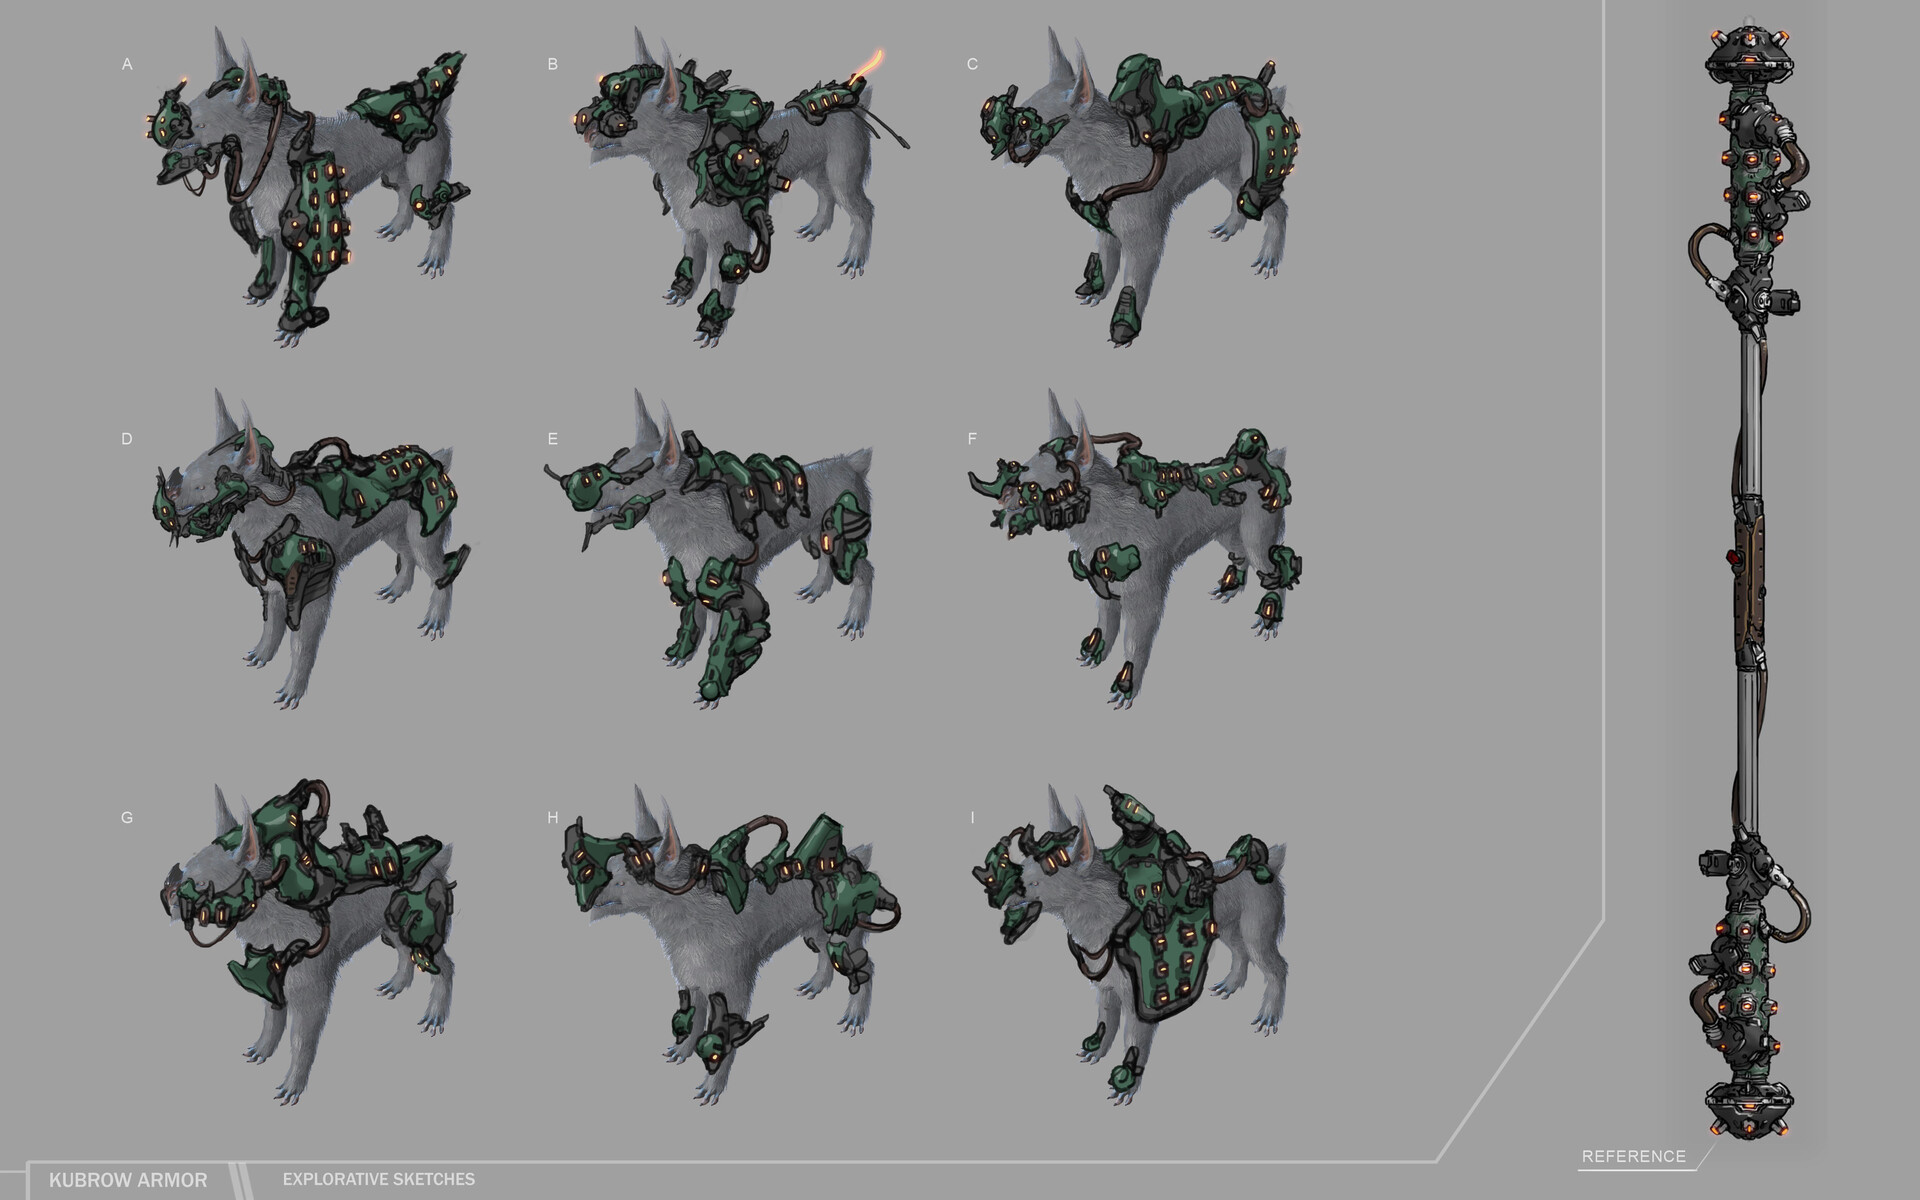 Explorative sketches for the Kubrow Armor